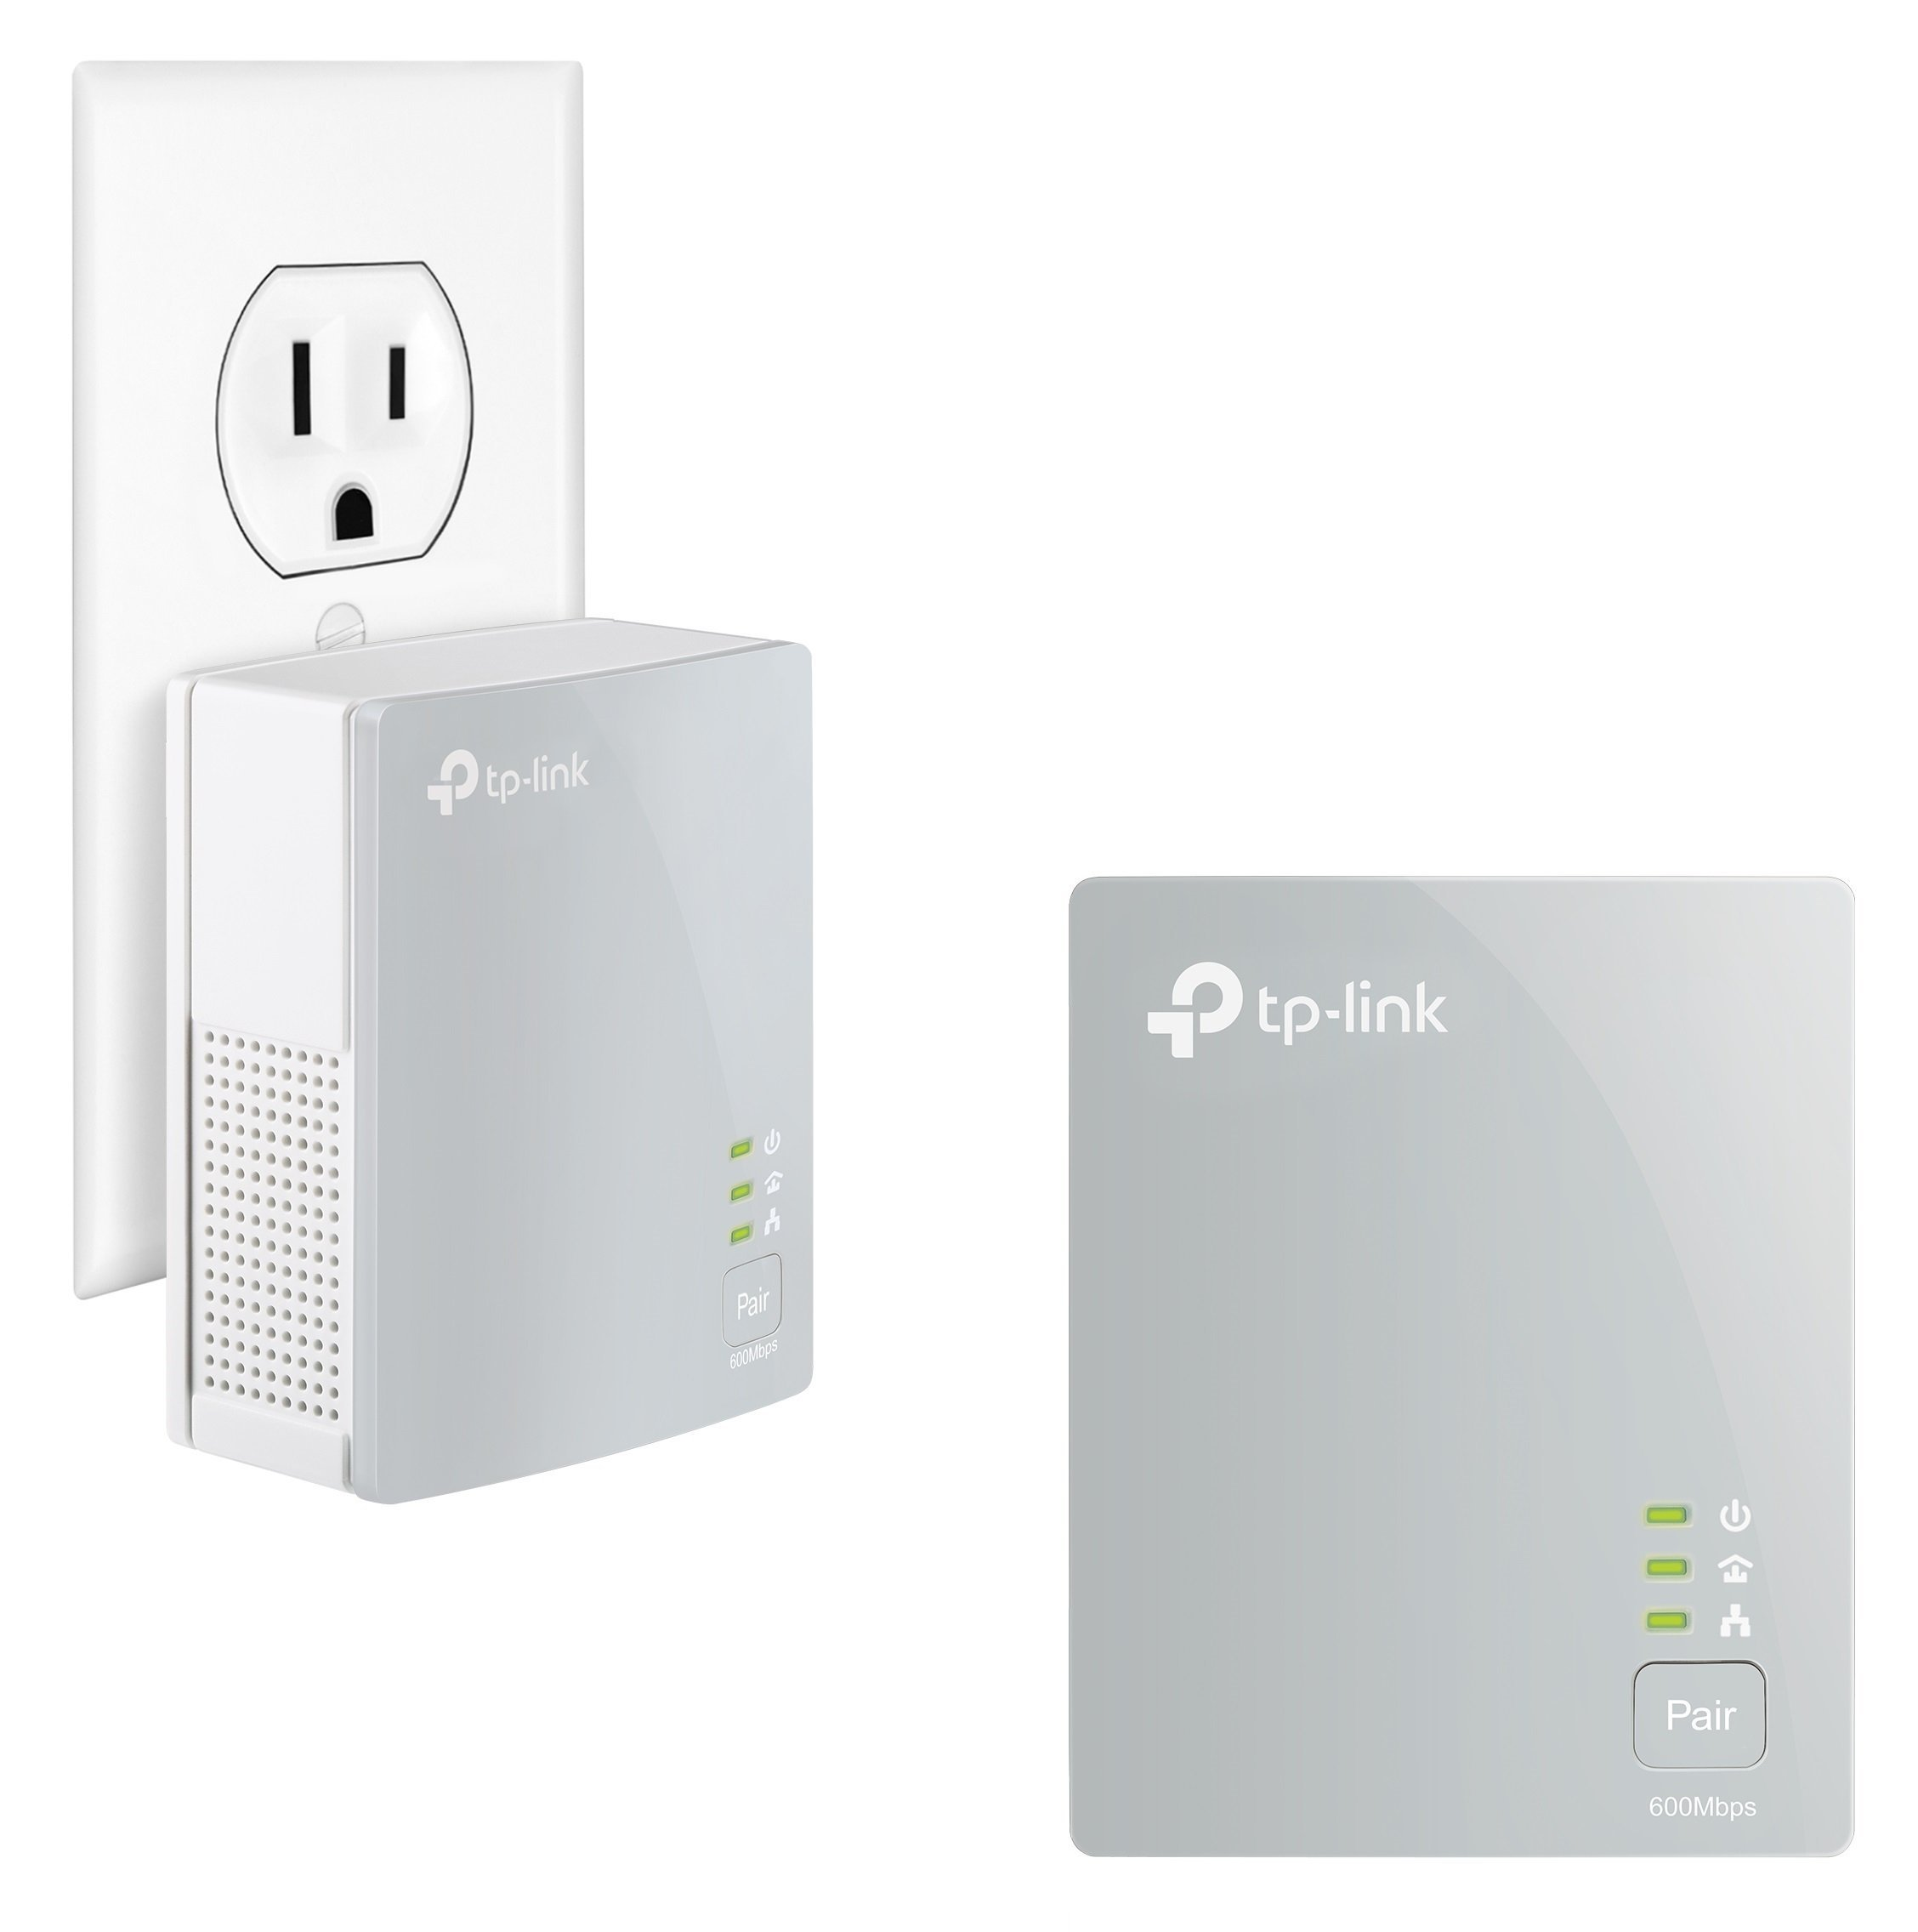 TP-LINK TL-PA4010KIT AV600 Nano Powerline Adapter Starter Kit, up to 500Mbps(Renewed) by TP-LINK